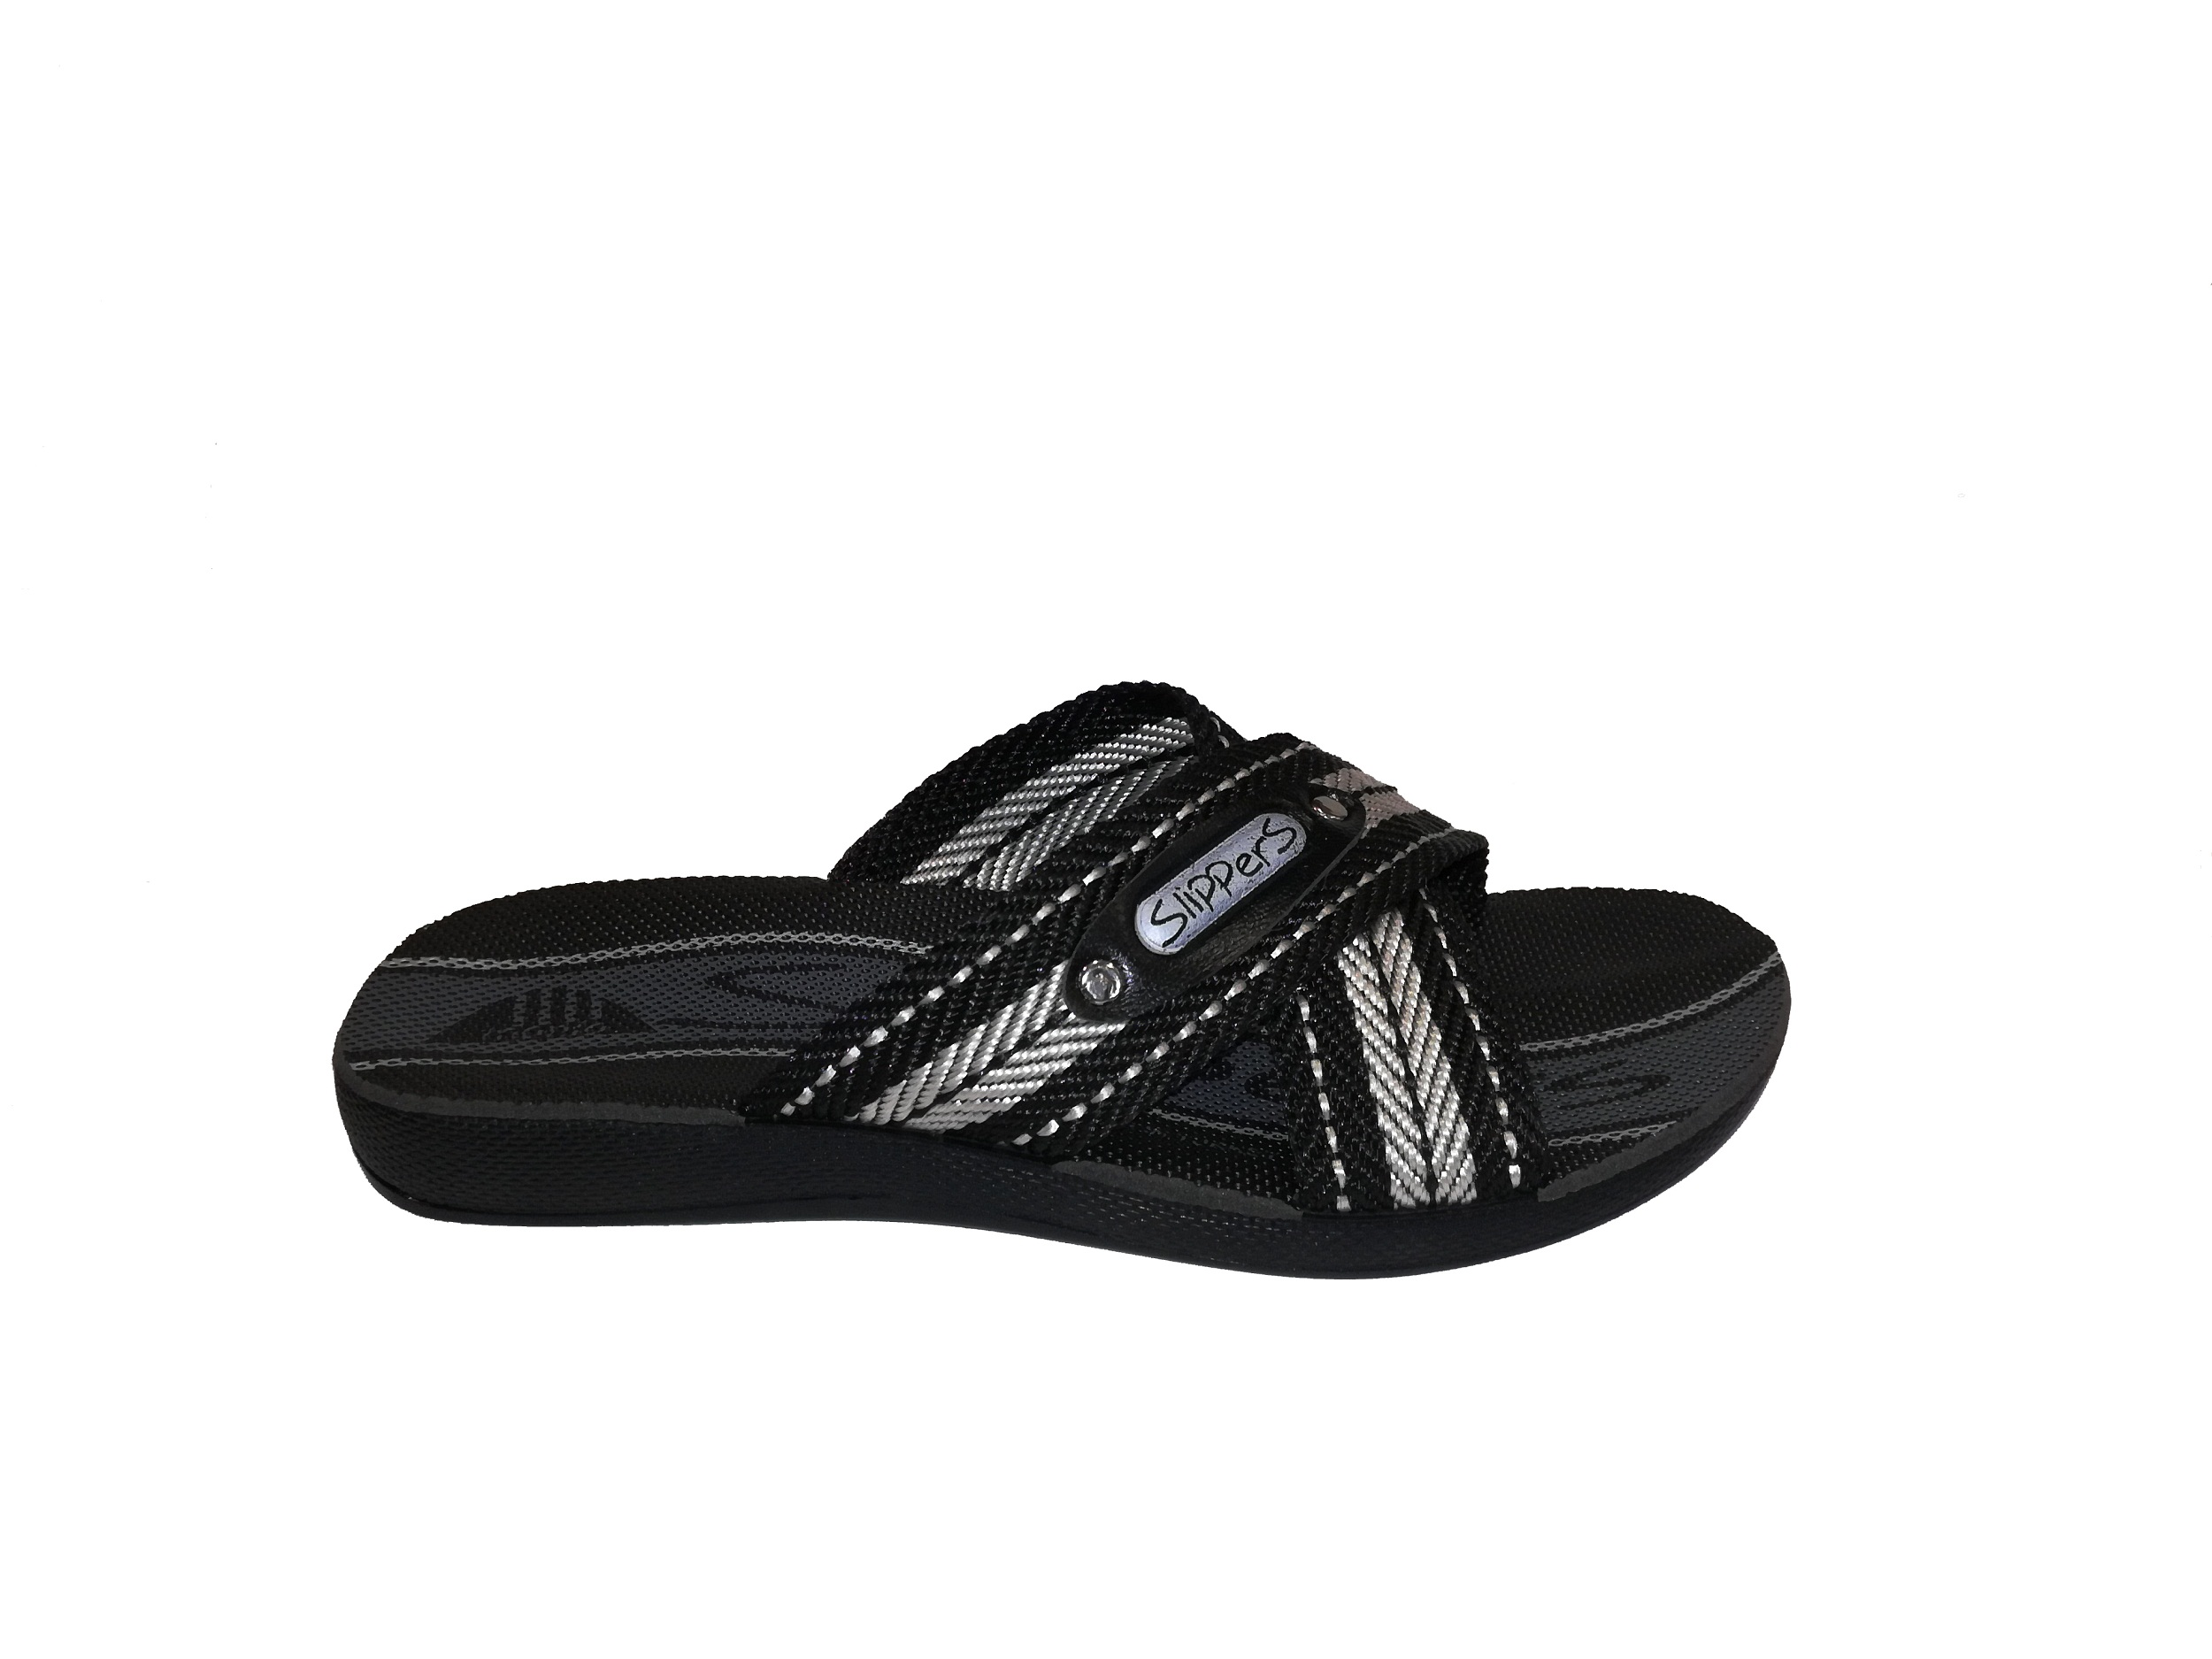 81730 Mne SLIPPERS BLACK